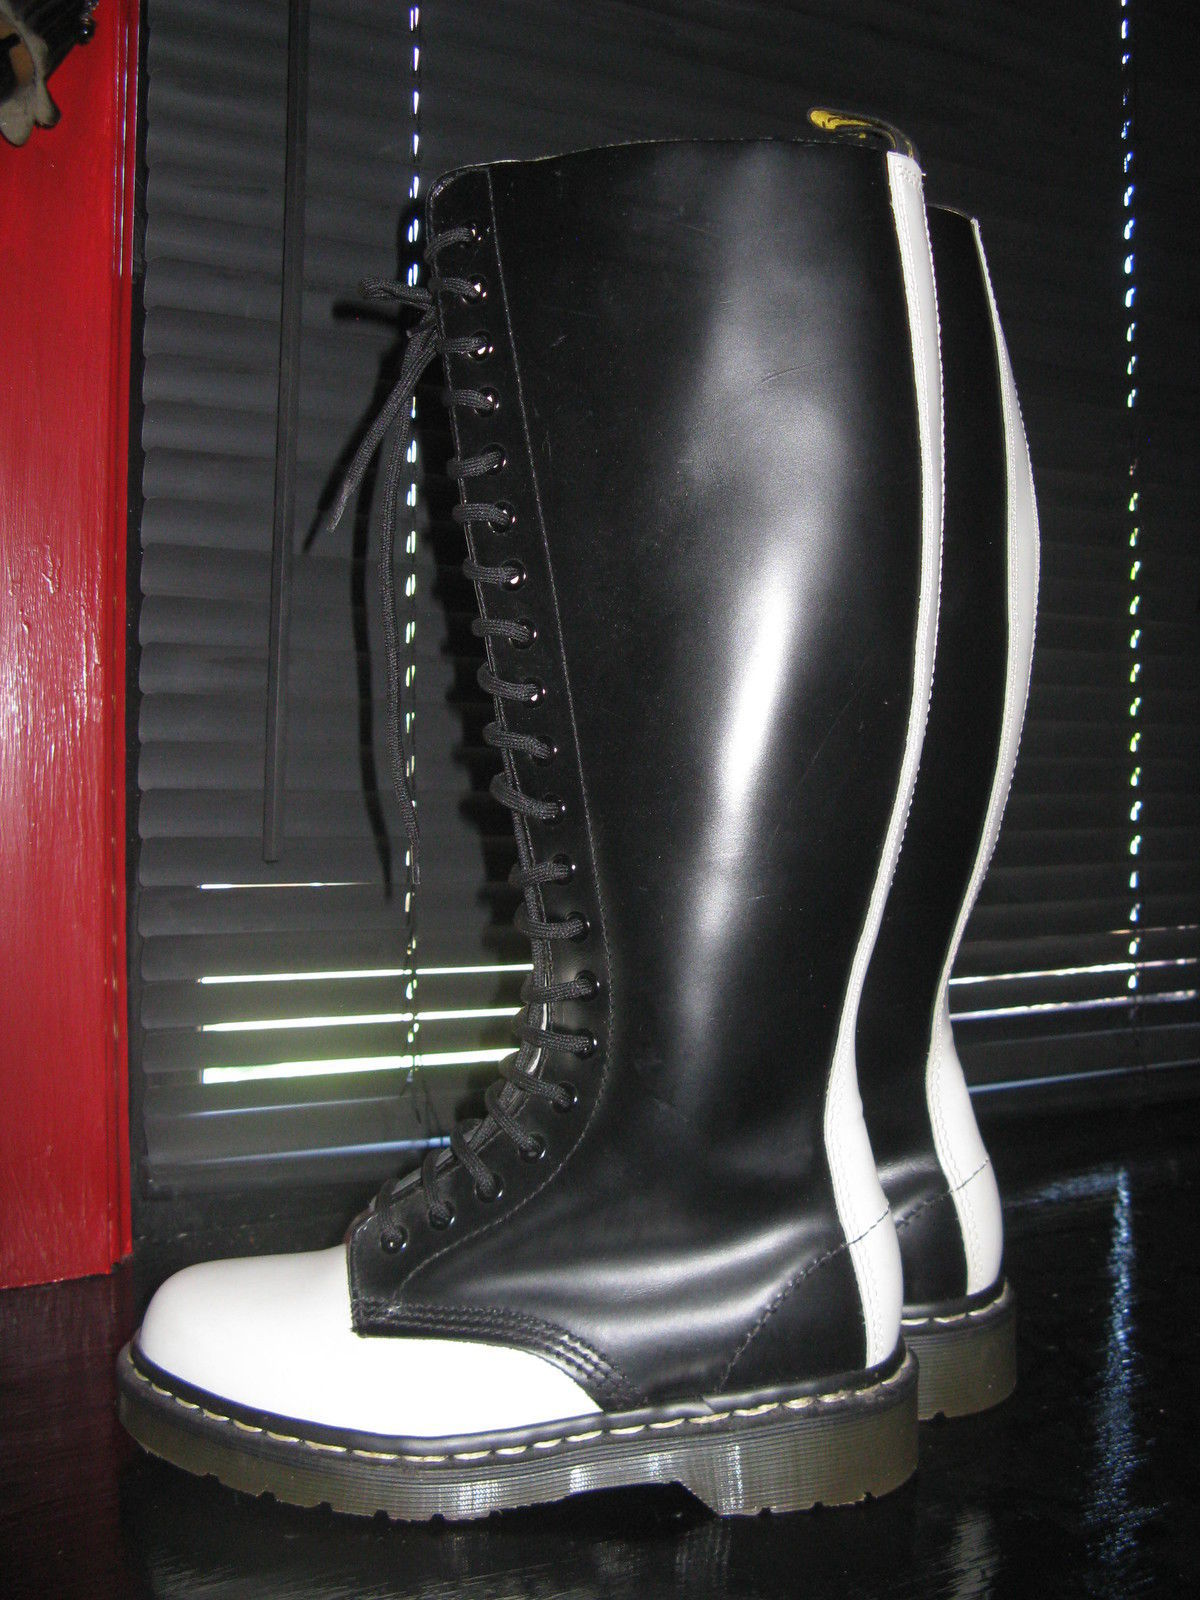 Super vintage rare 20 eye two-tone sample England DOCs Dr Martens boots 6 UK4 36